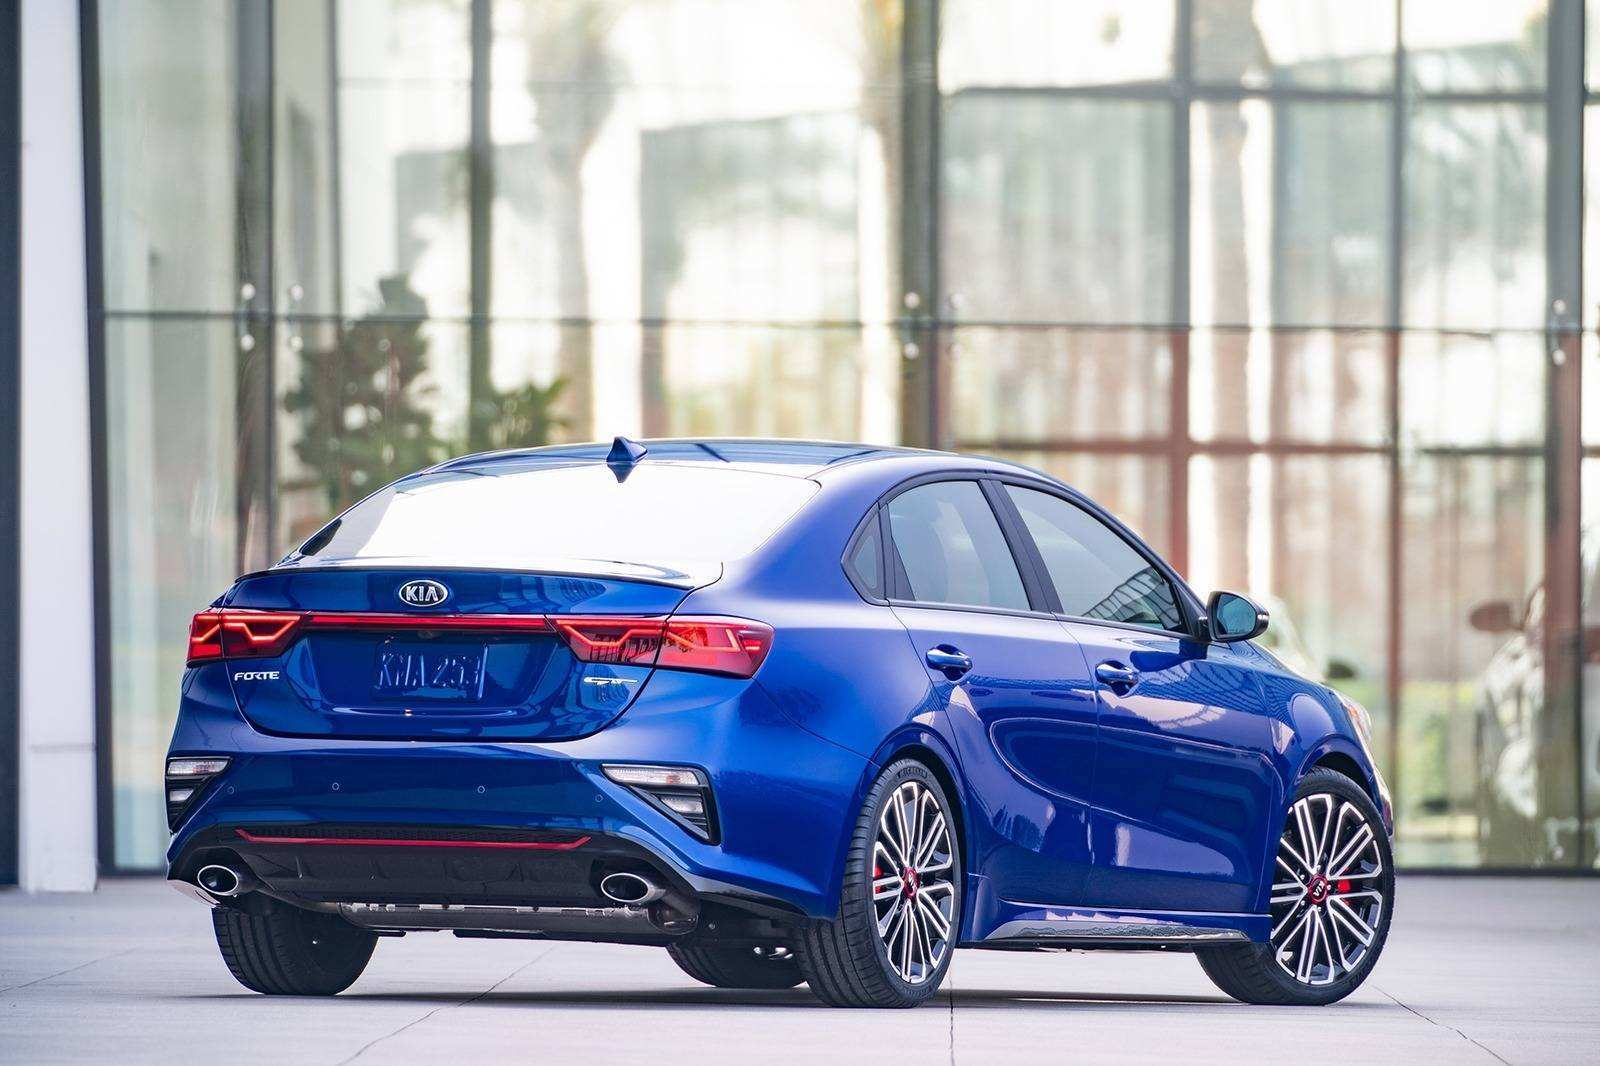 14 Gallery of Kia Forte 2020 Exterior Date Pricing by Kia Forte 2020 Exterior Date